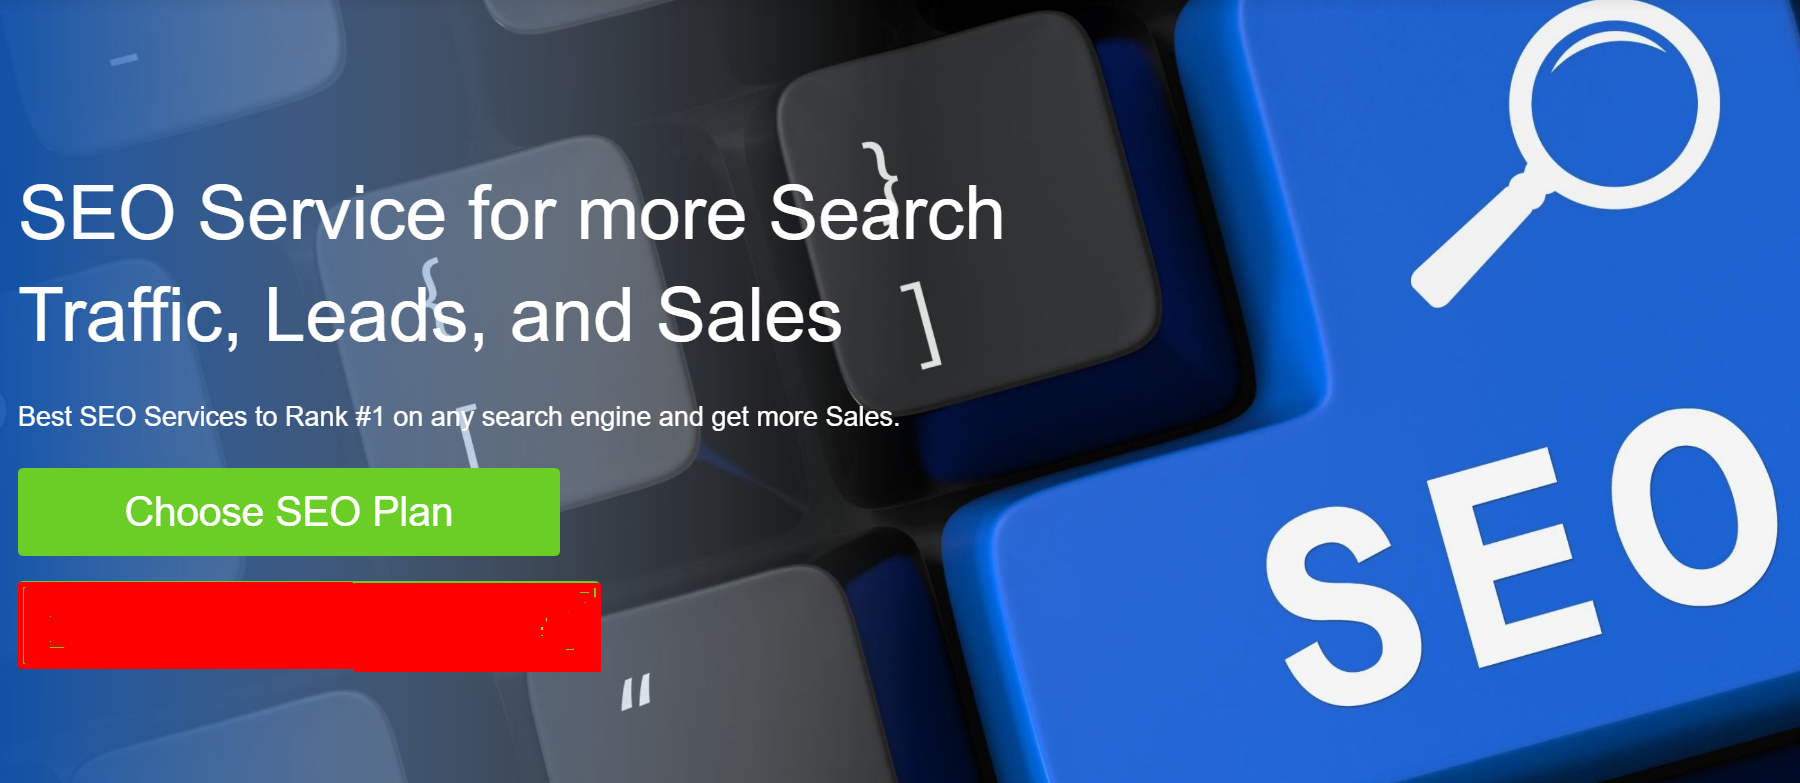 Improve Search Engine Ranking - Get our SEO Services